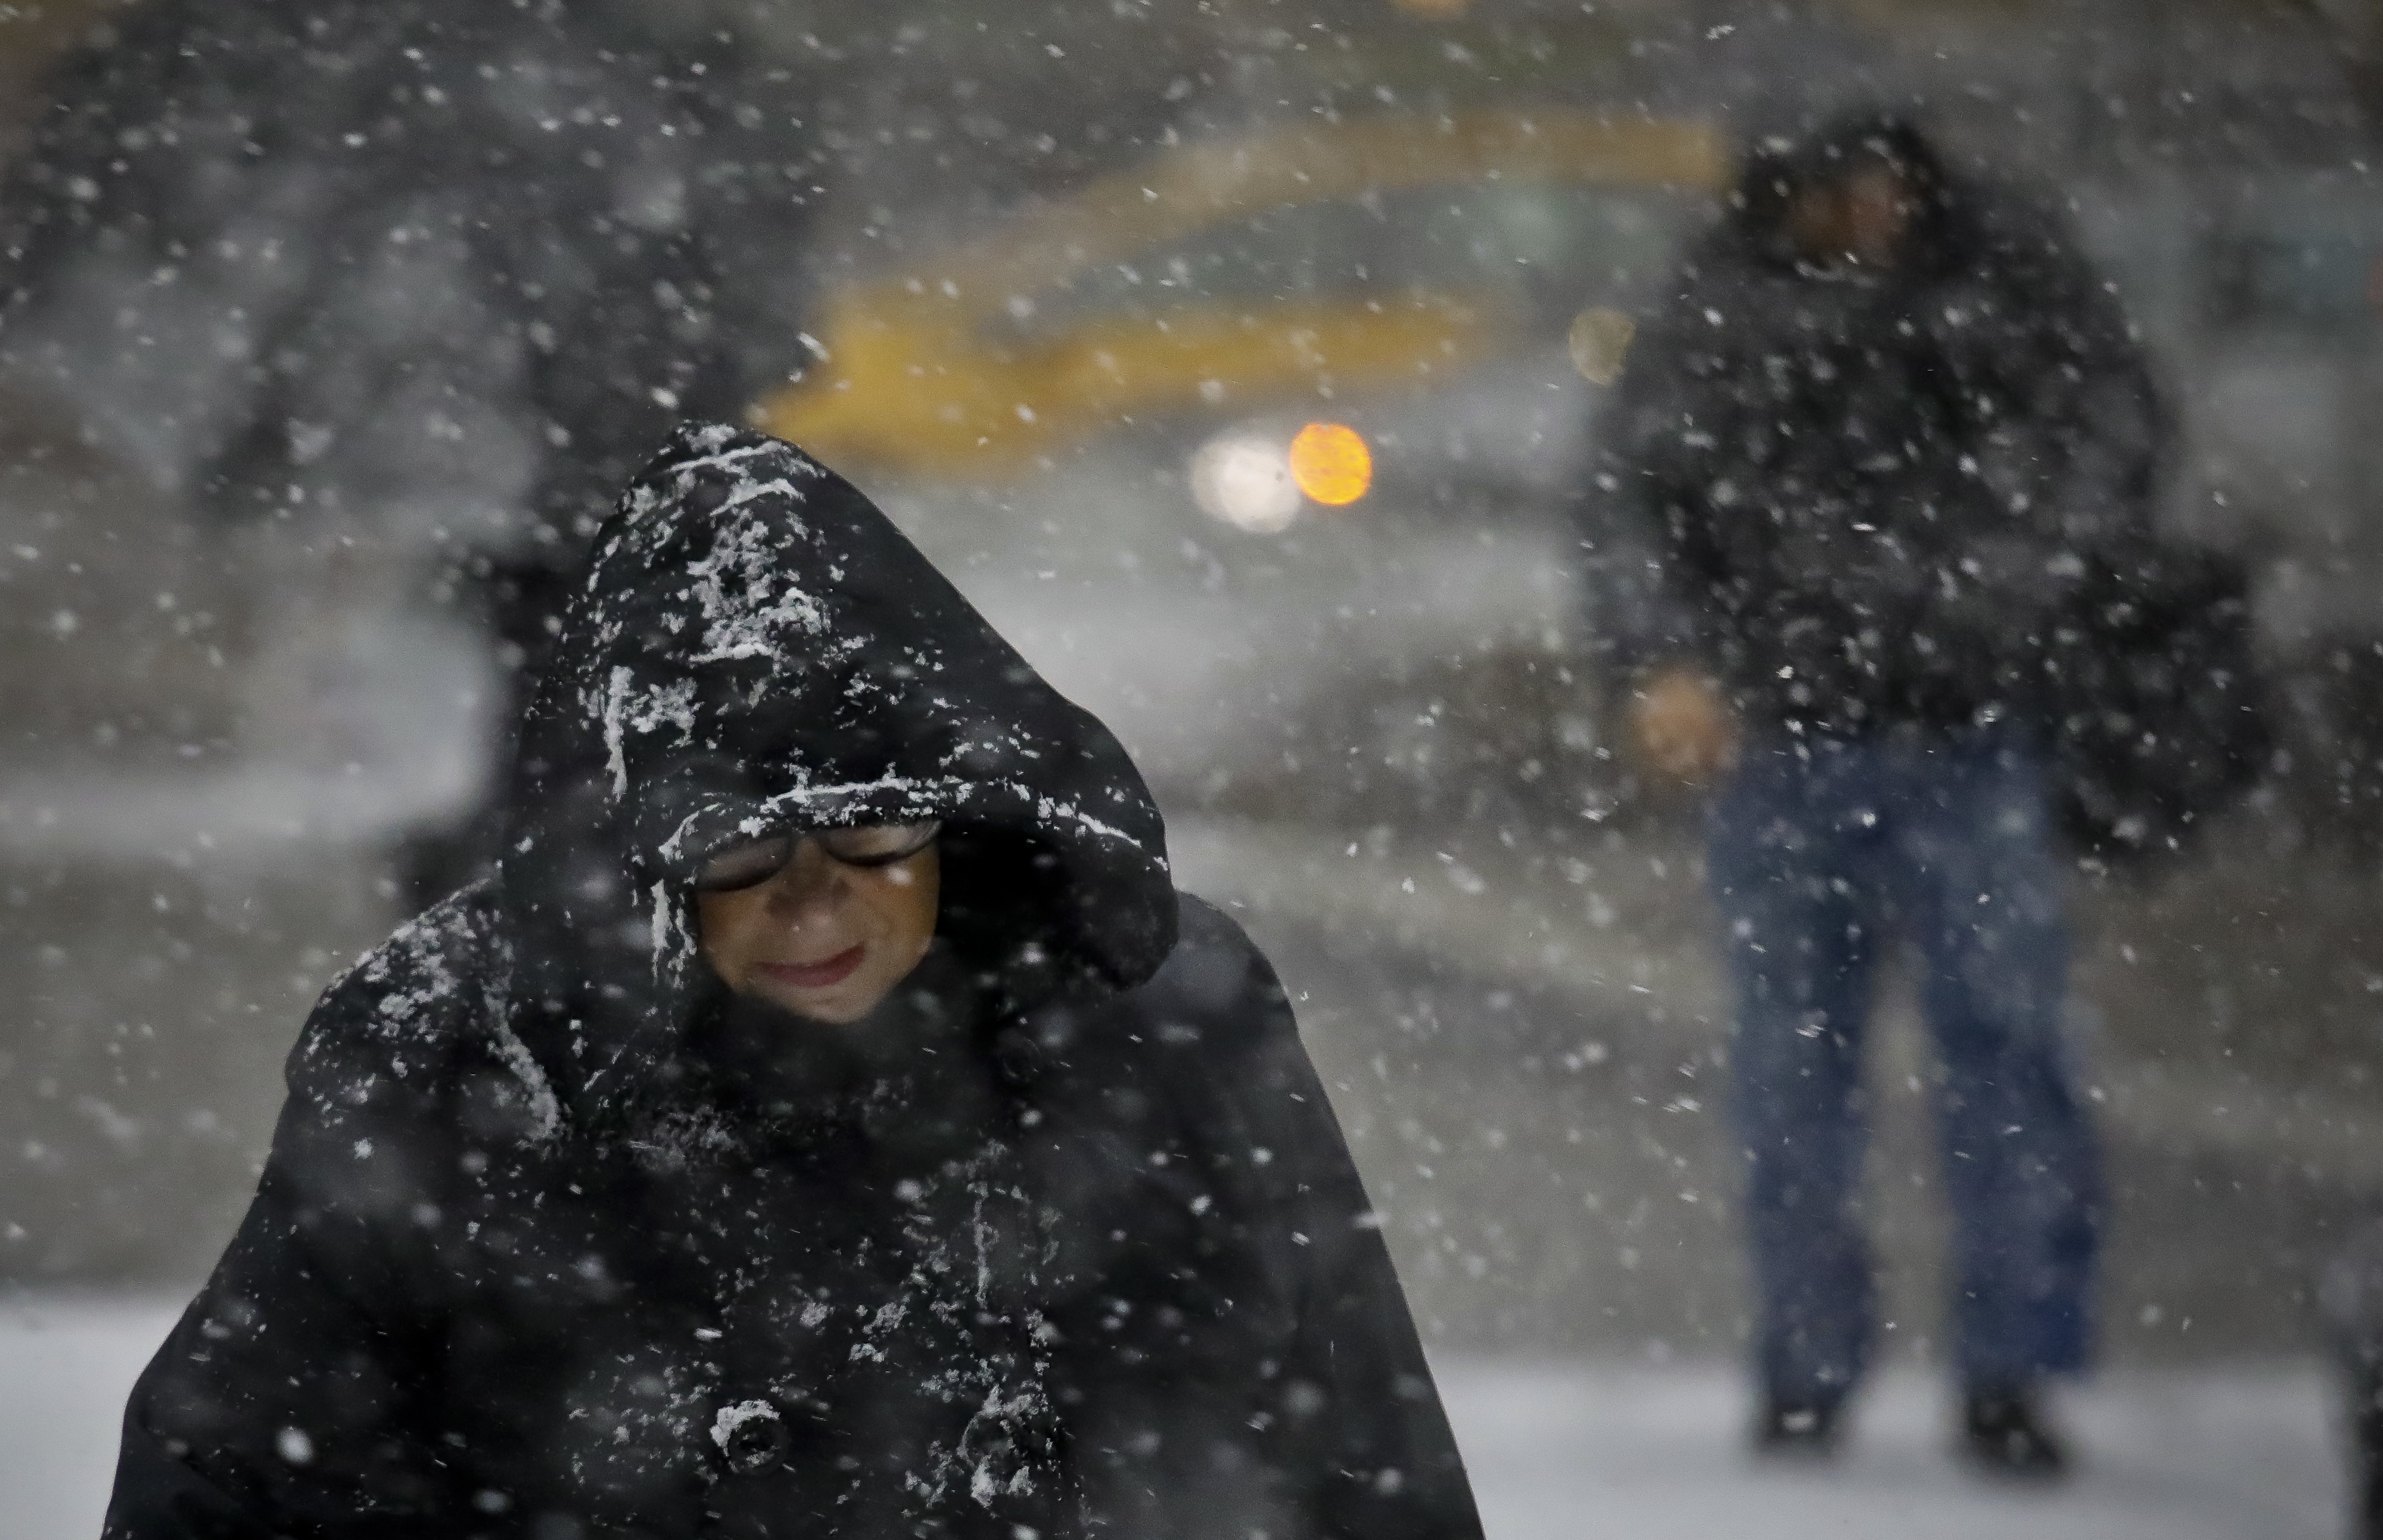 Snowstorm slows evening commute in New York City